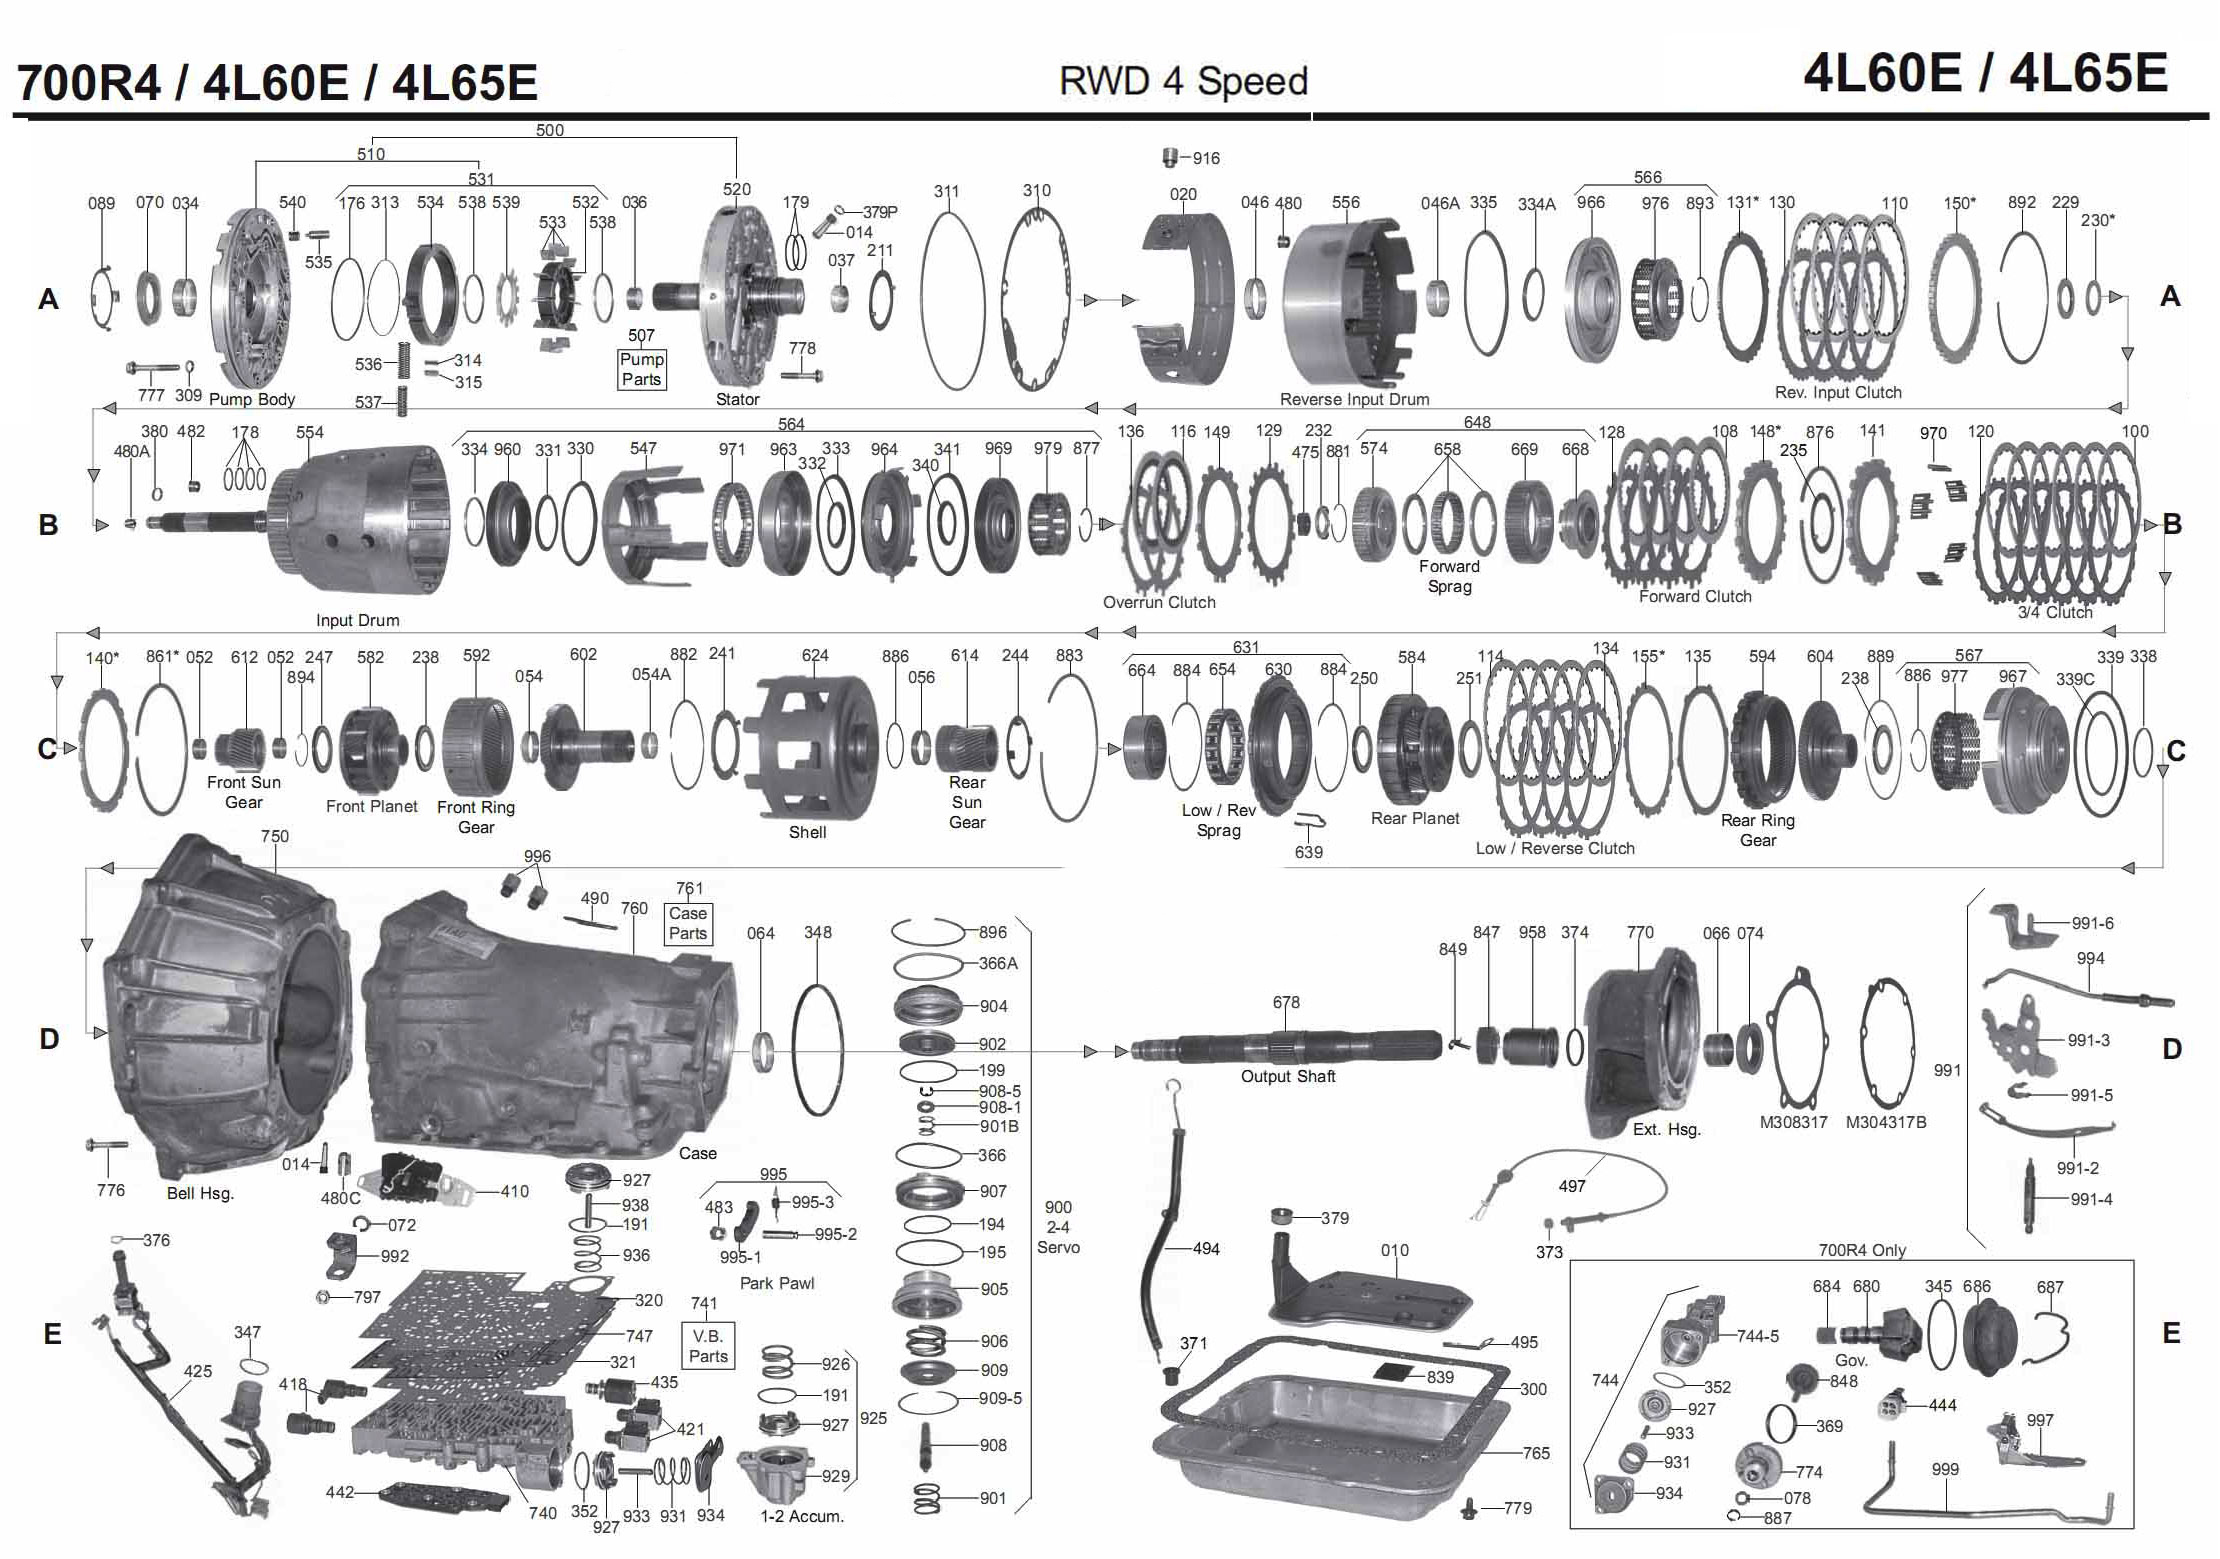 Enjoyable 700R4 Rebuild Diagram Wiring Diagram Schema Wiring Cloud Rineaidewilluminateatxorg